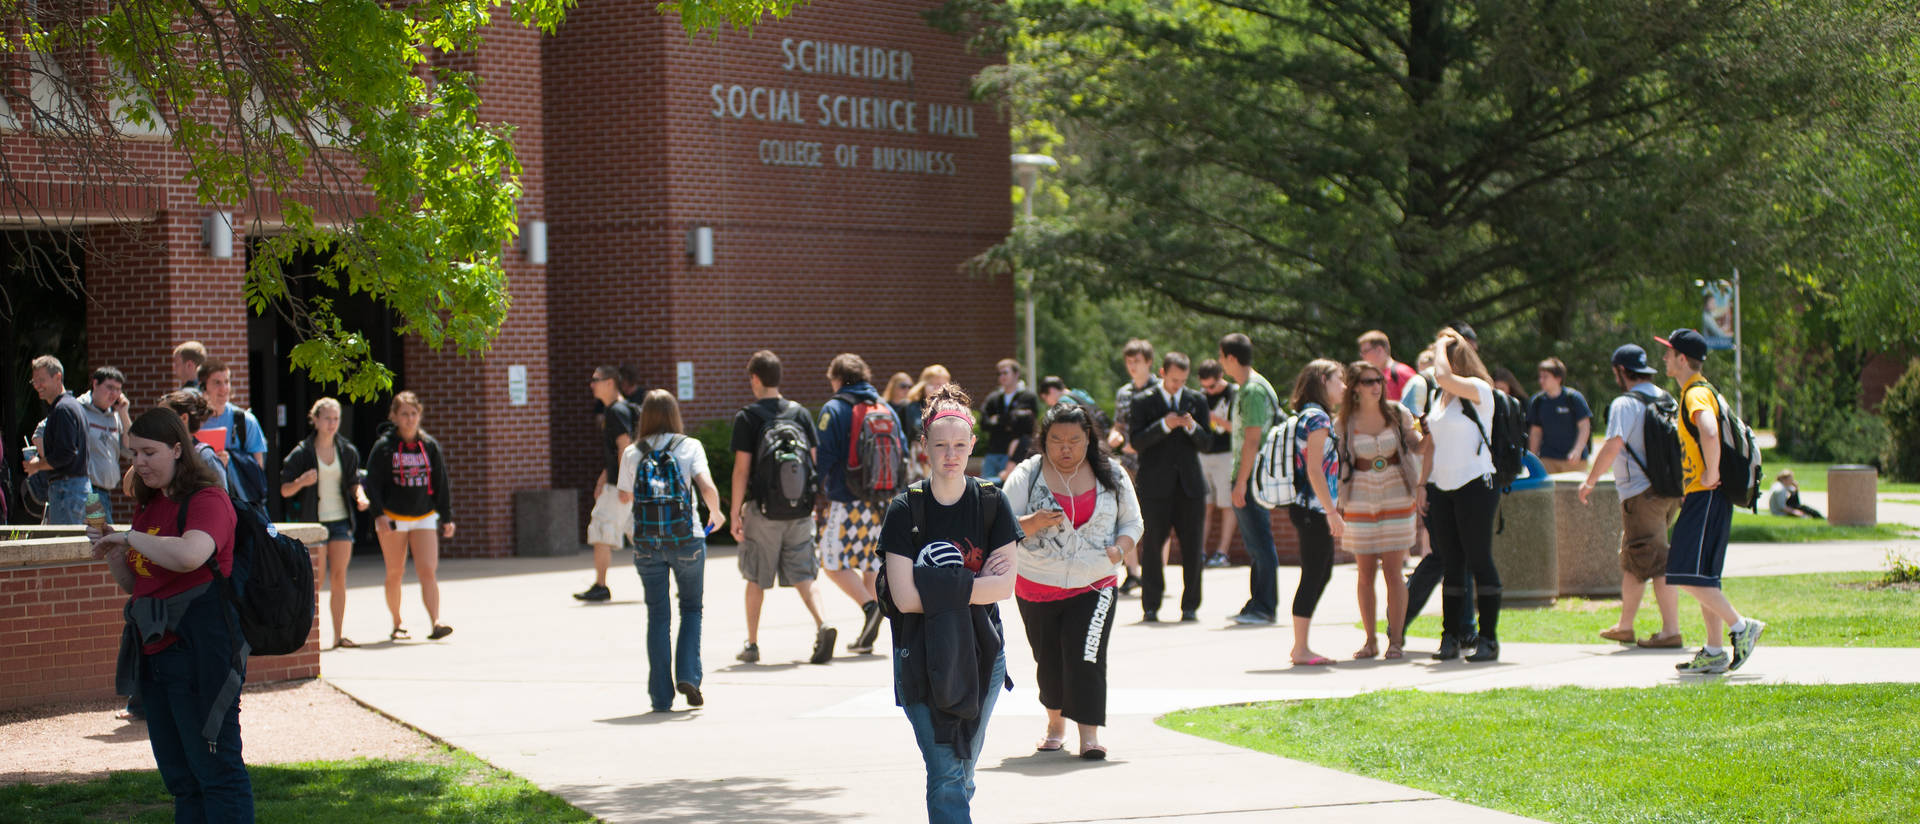 Students outside Schneider Hall